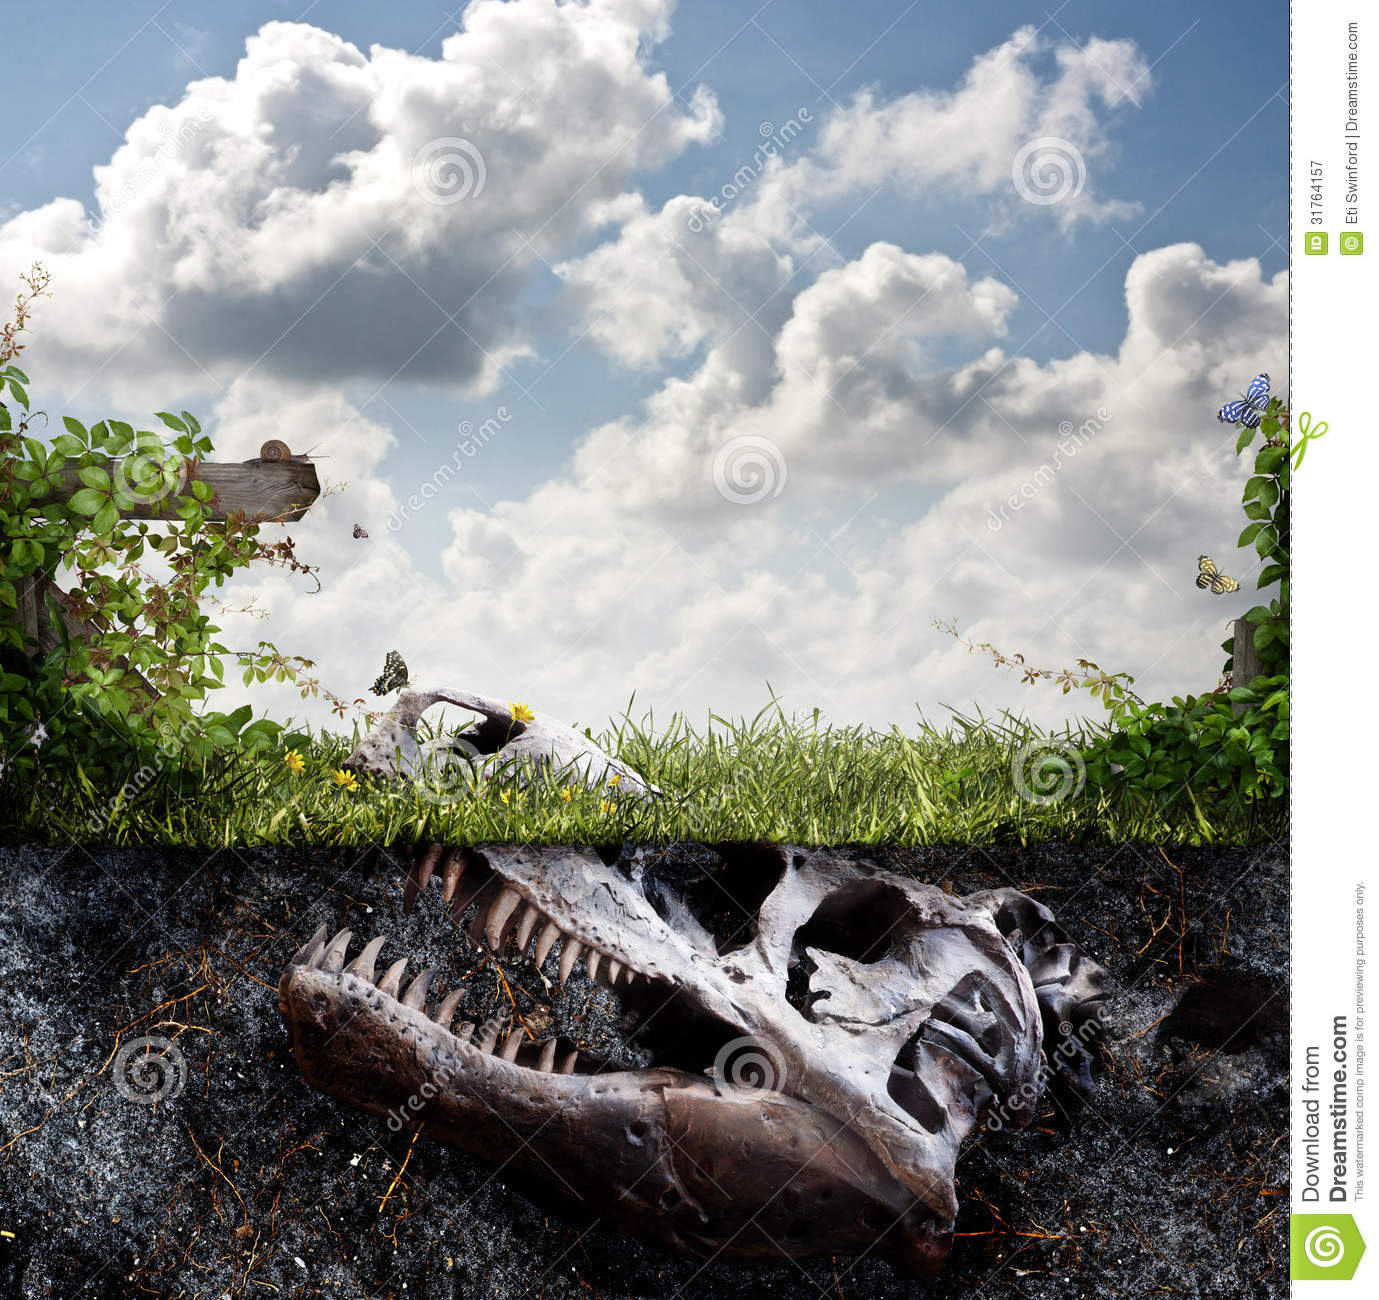 Dinosaur Fossil Buried In Dirt Royalty Free Stock Photography.